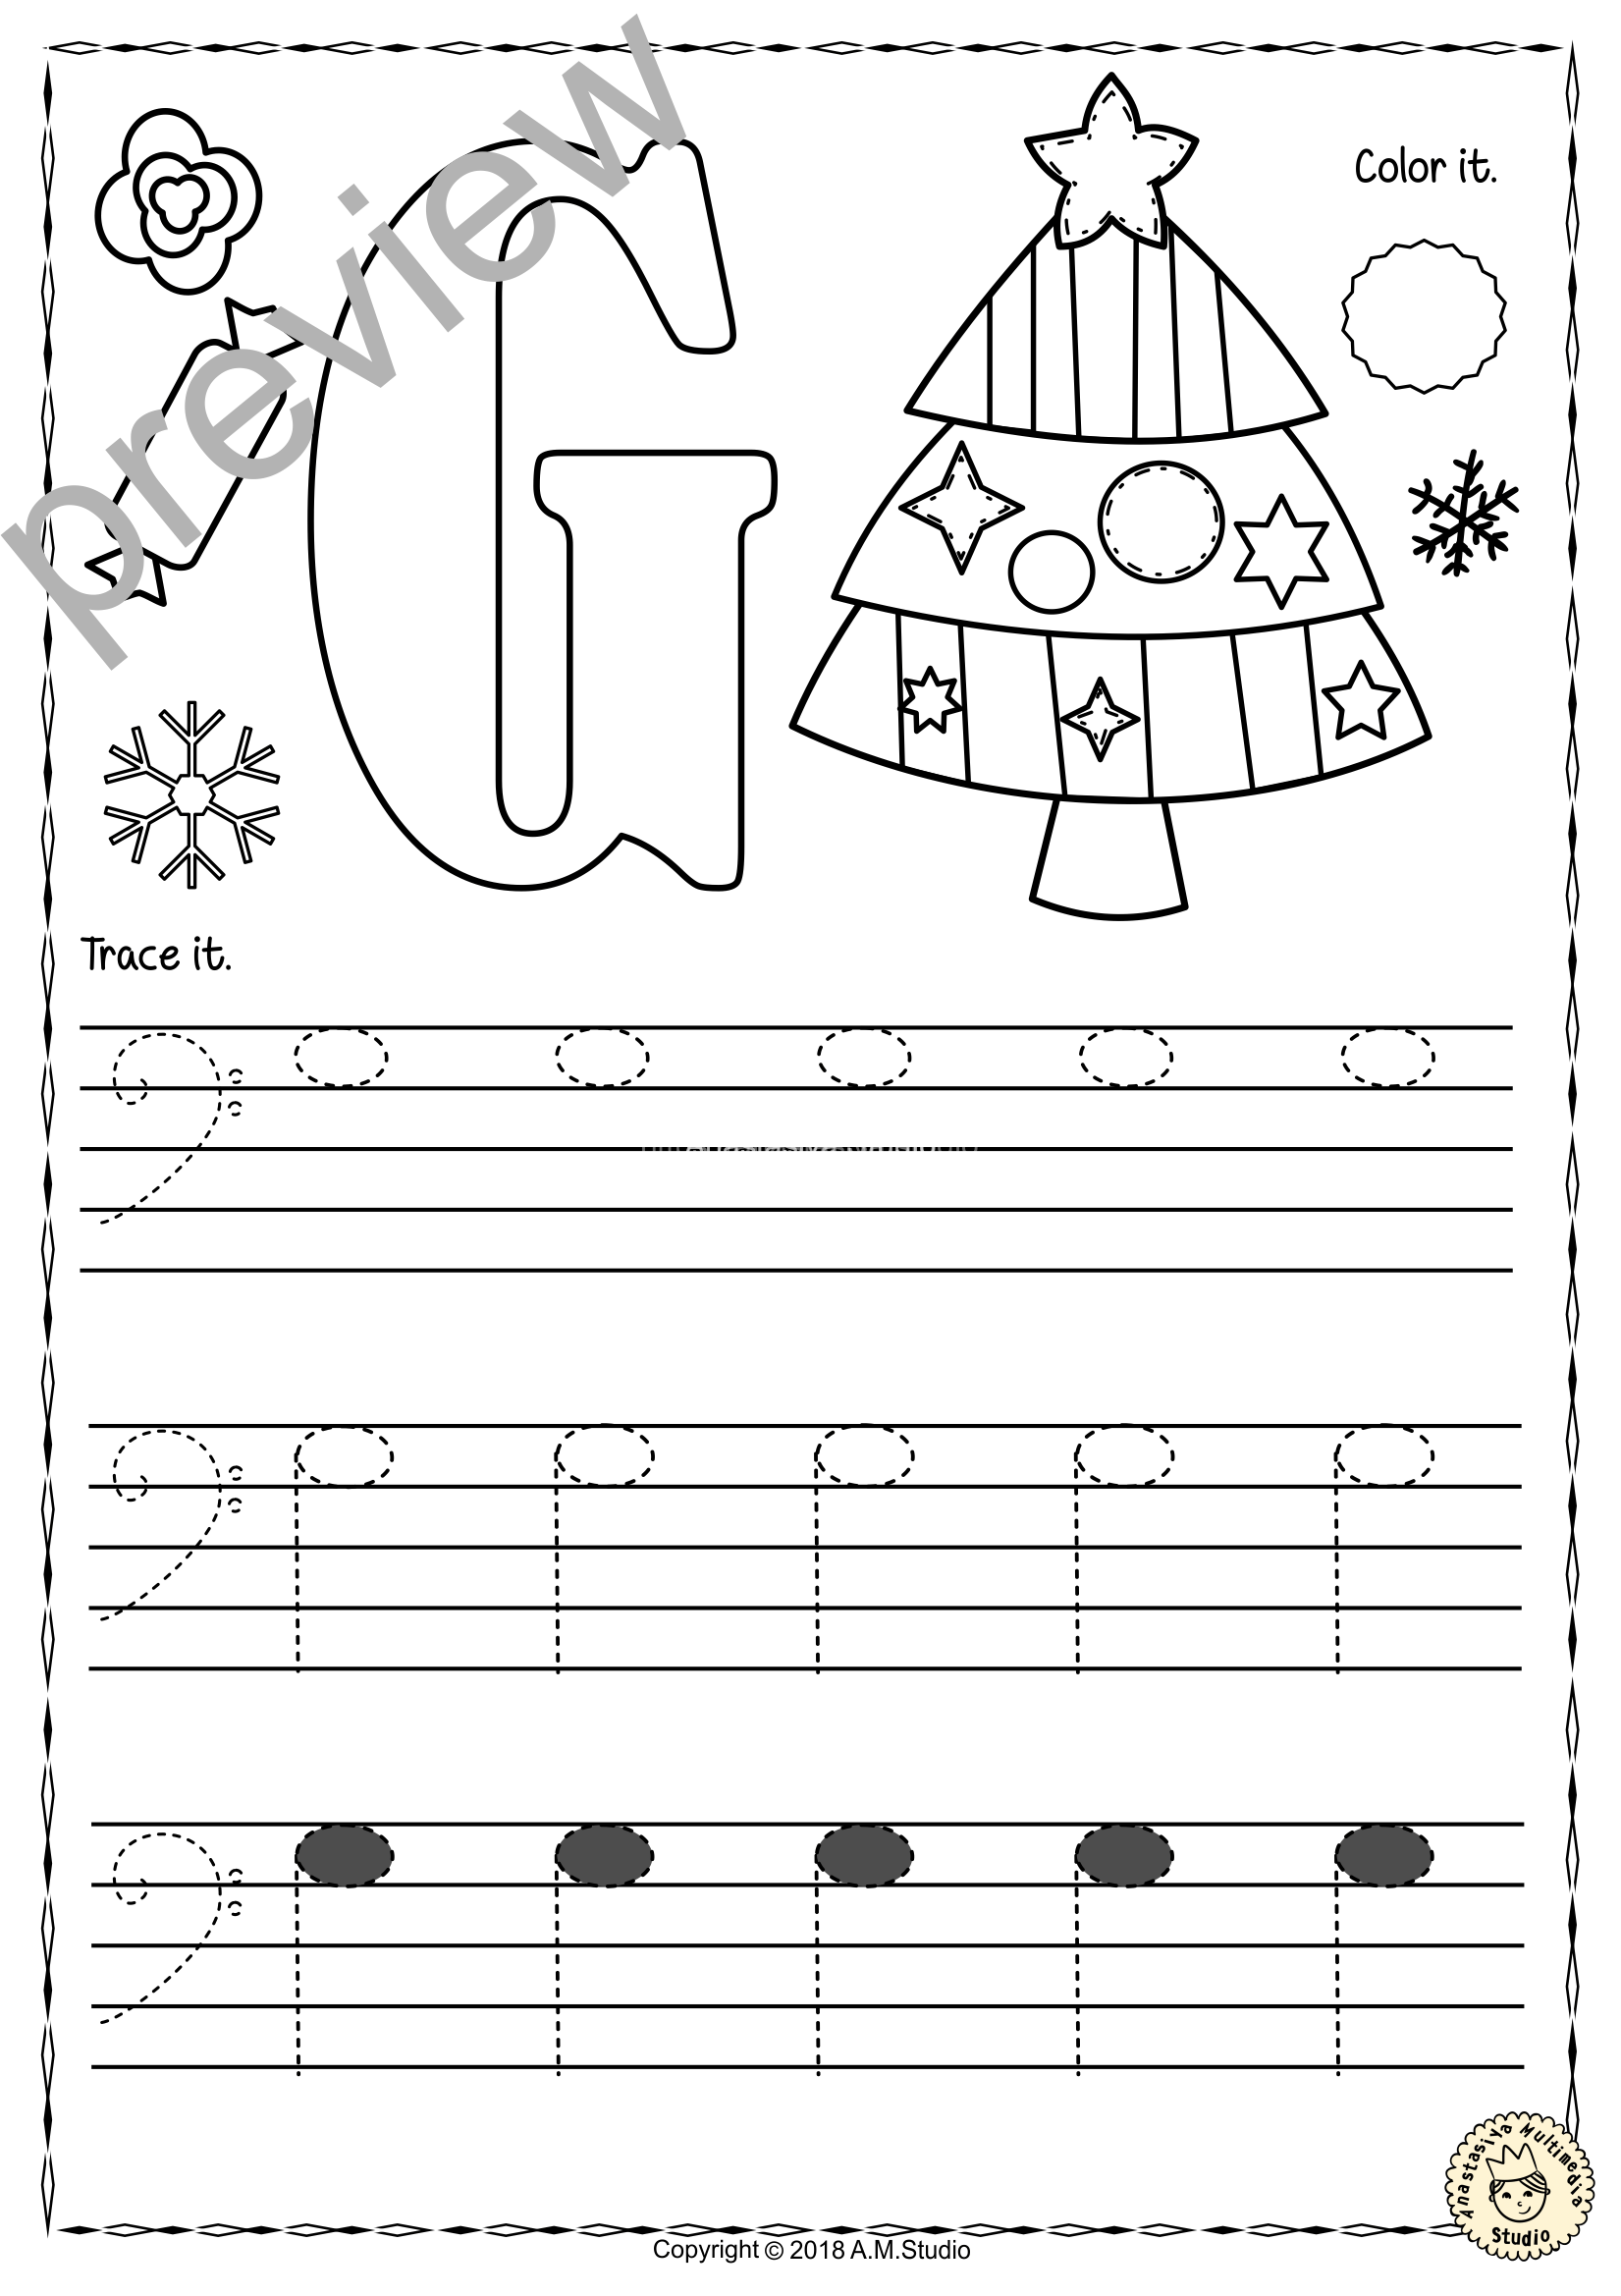 Bass Clef Tracing Music Notes Worksheets For Winter And